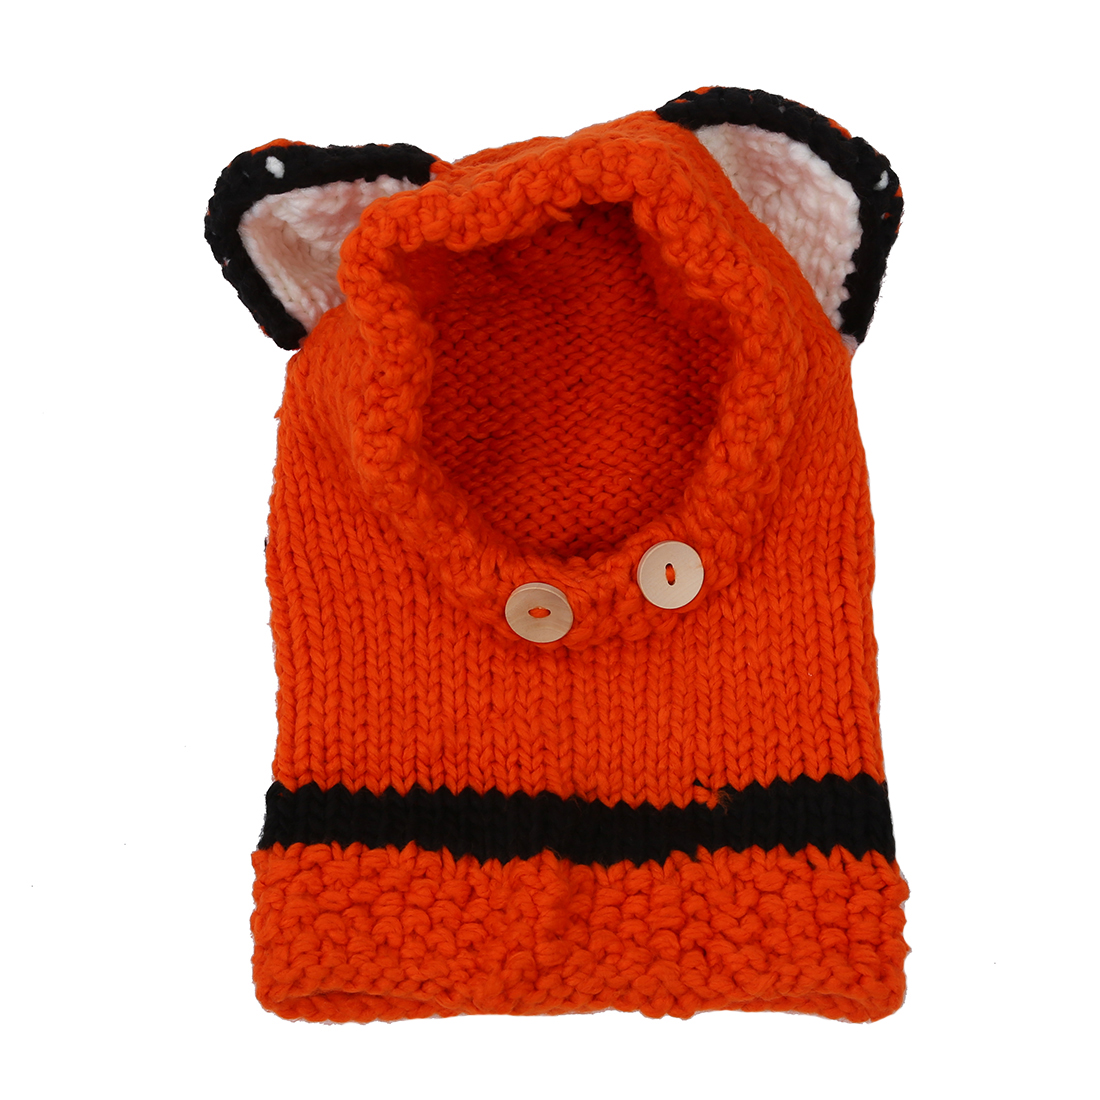 Toddler Girls Boys Baby Winter Beanie Warm Hat Hooded Scarf Earflap Knitted Cap (Color: Orange)